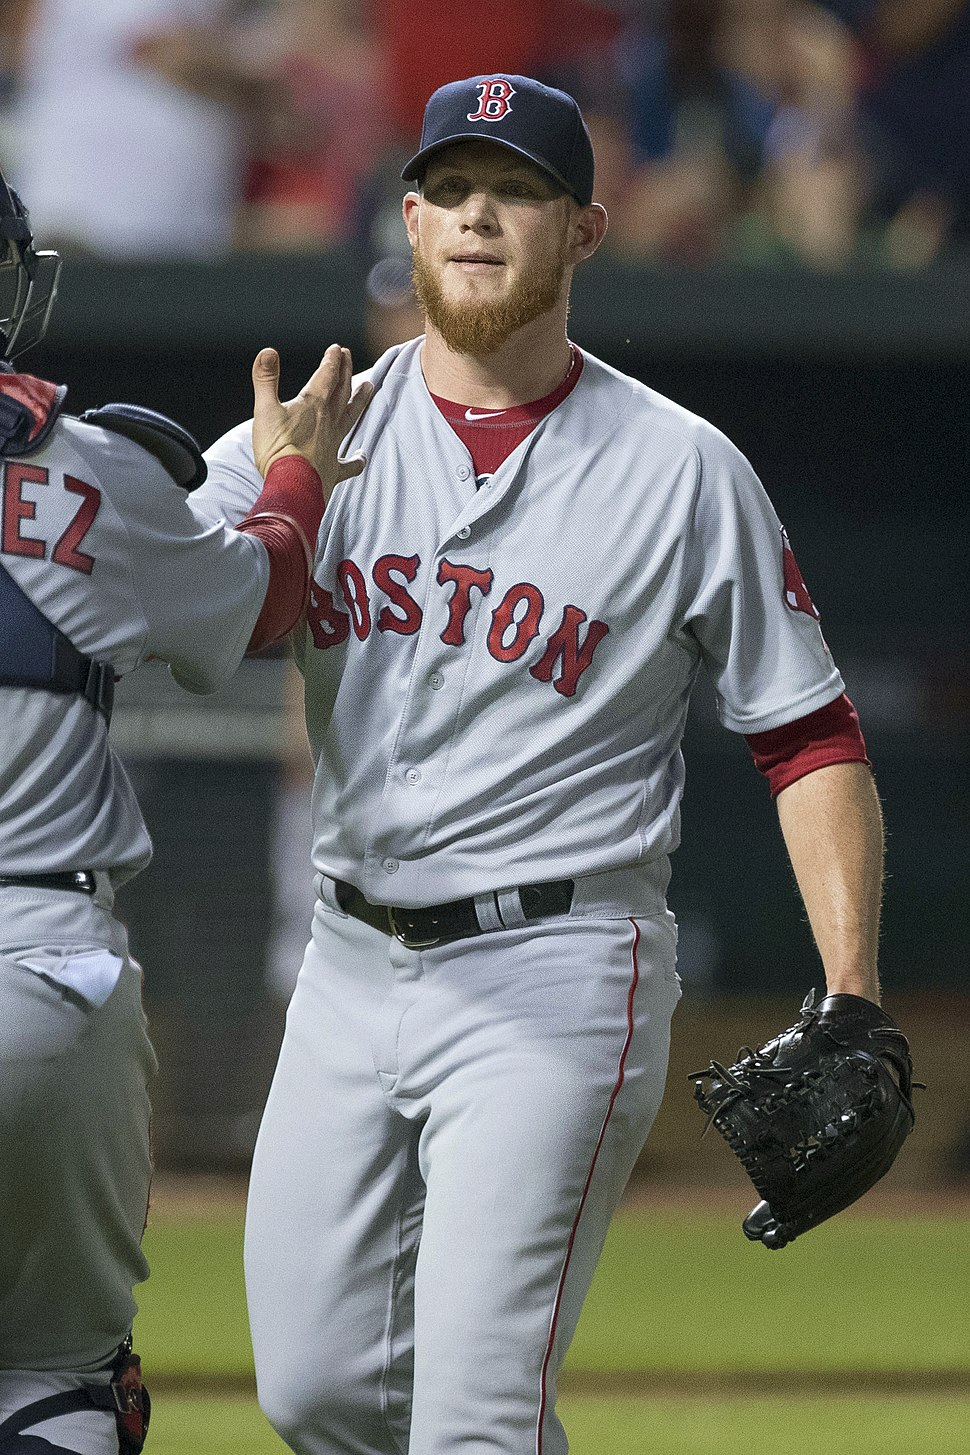 Craig Kimbrel on May 31, 2016